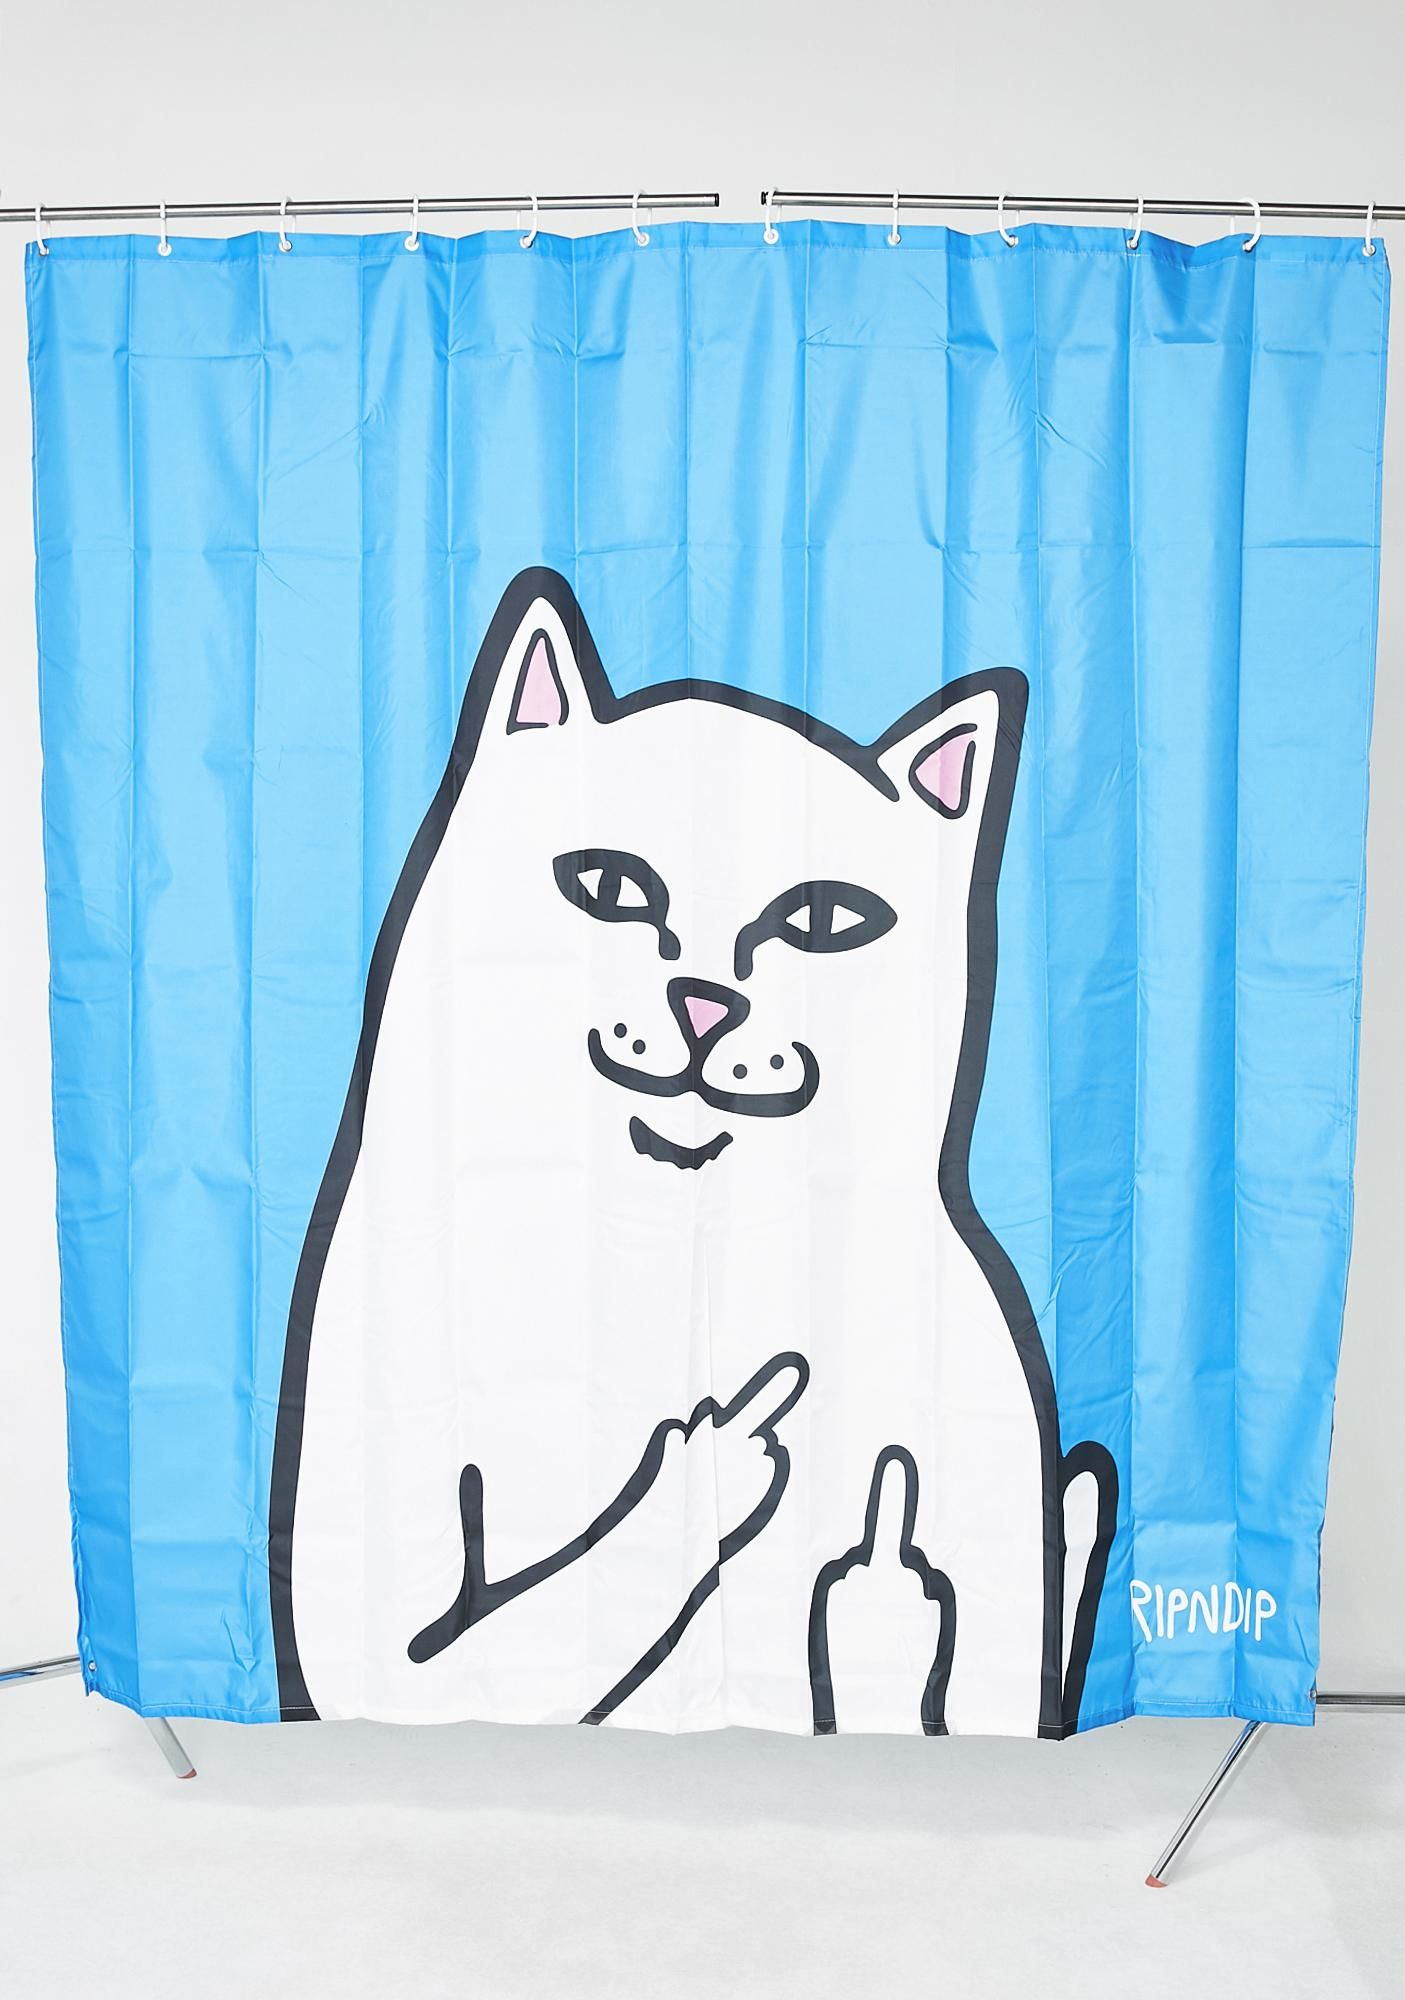 Lord Nermal Shower Curtain Blue Bags Shower Curtain Graphic